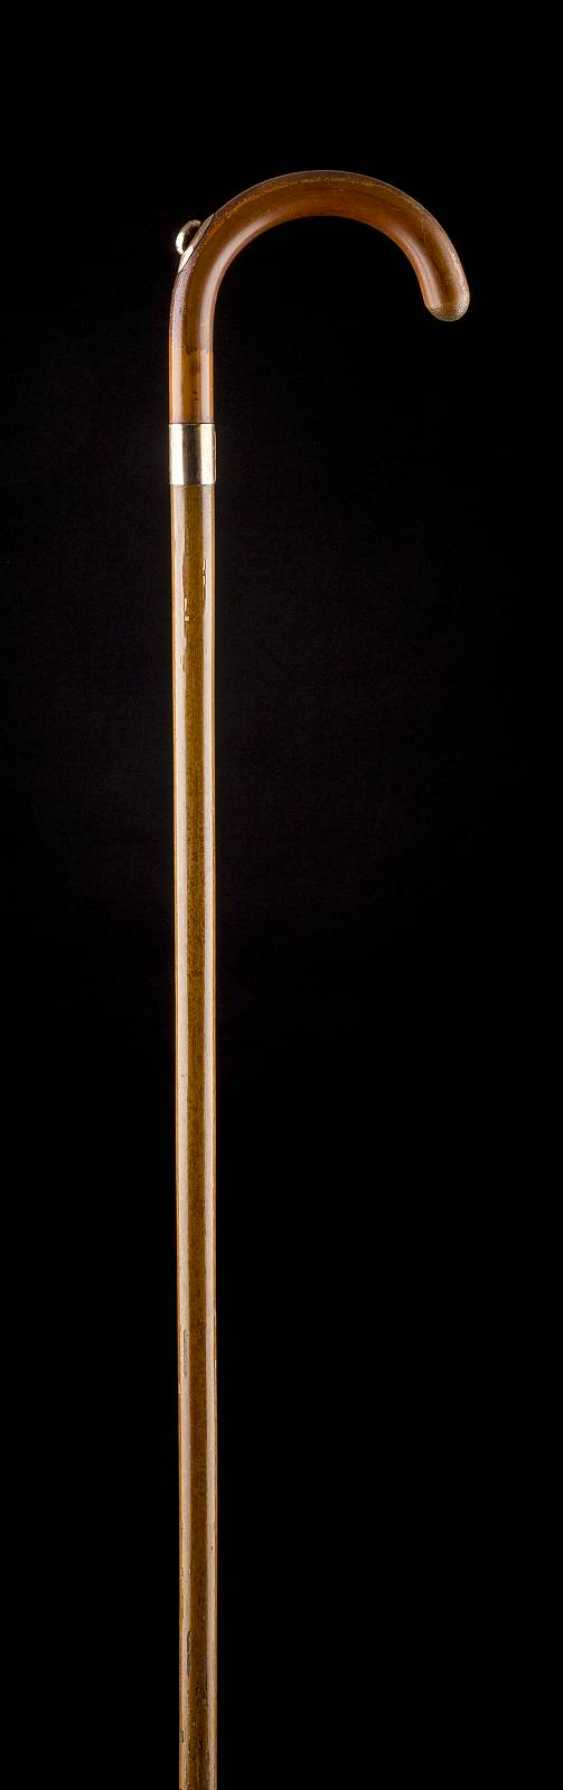 WALKING STICK WITH GOLD MOUNTED PENCIL - photo 1